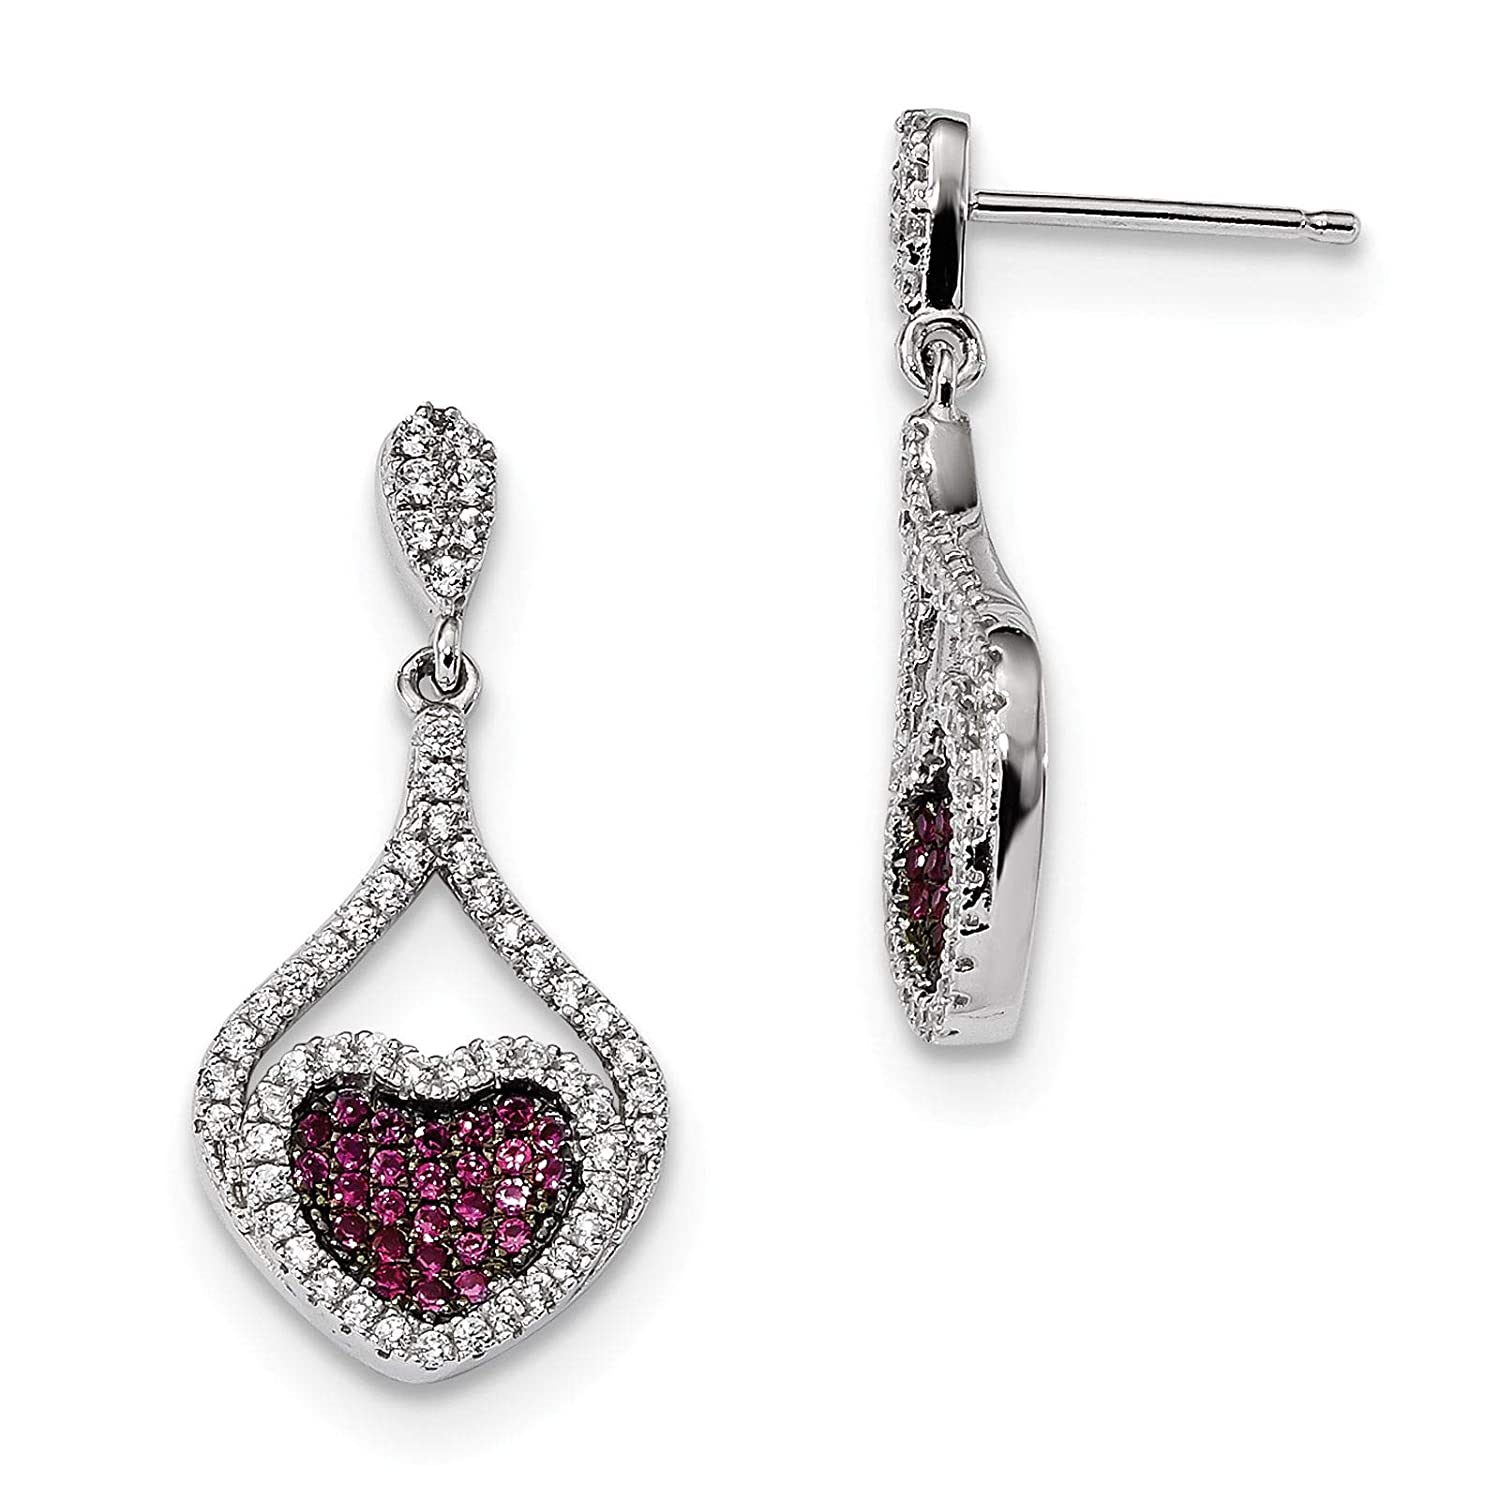 Brilliant Embers 925 Sterling Silver Rhodium-plated Polished Red /& White CZ Heart Dangle Post Earrings